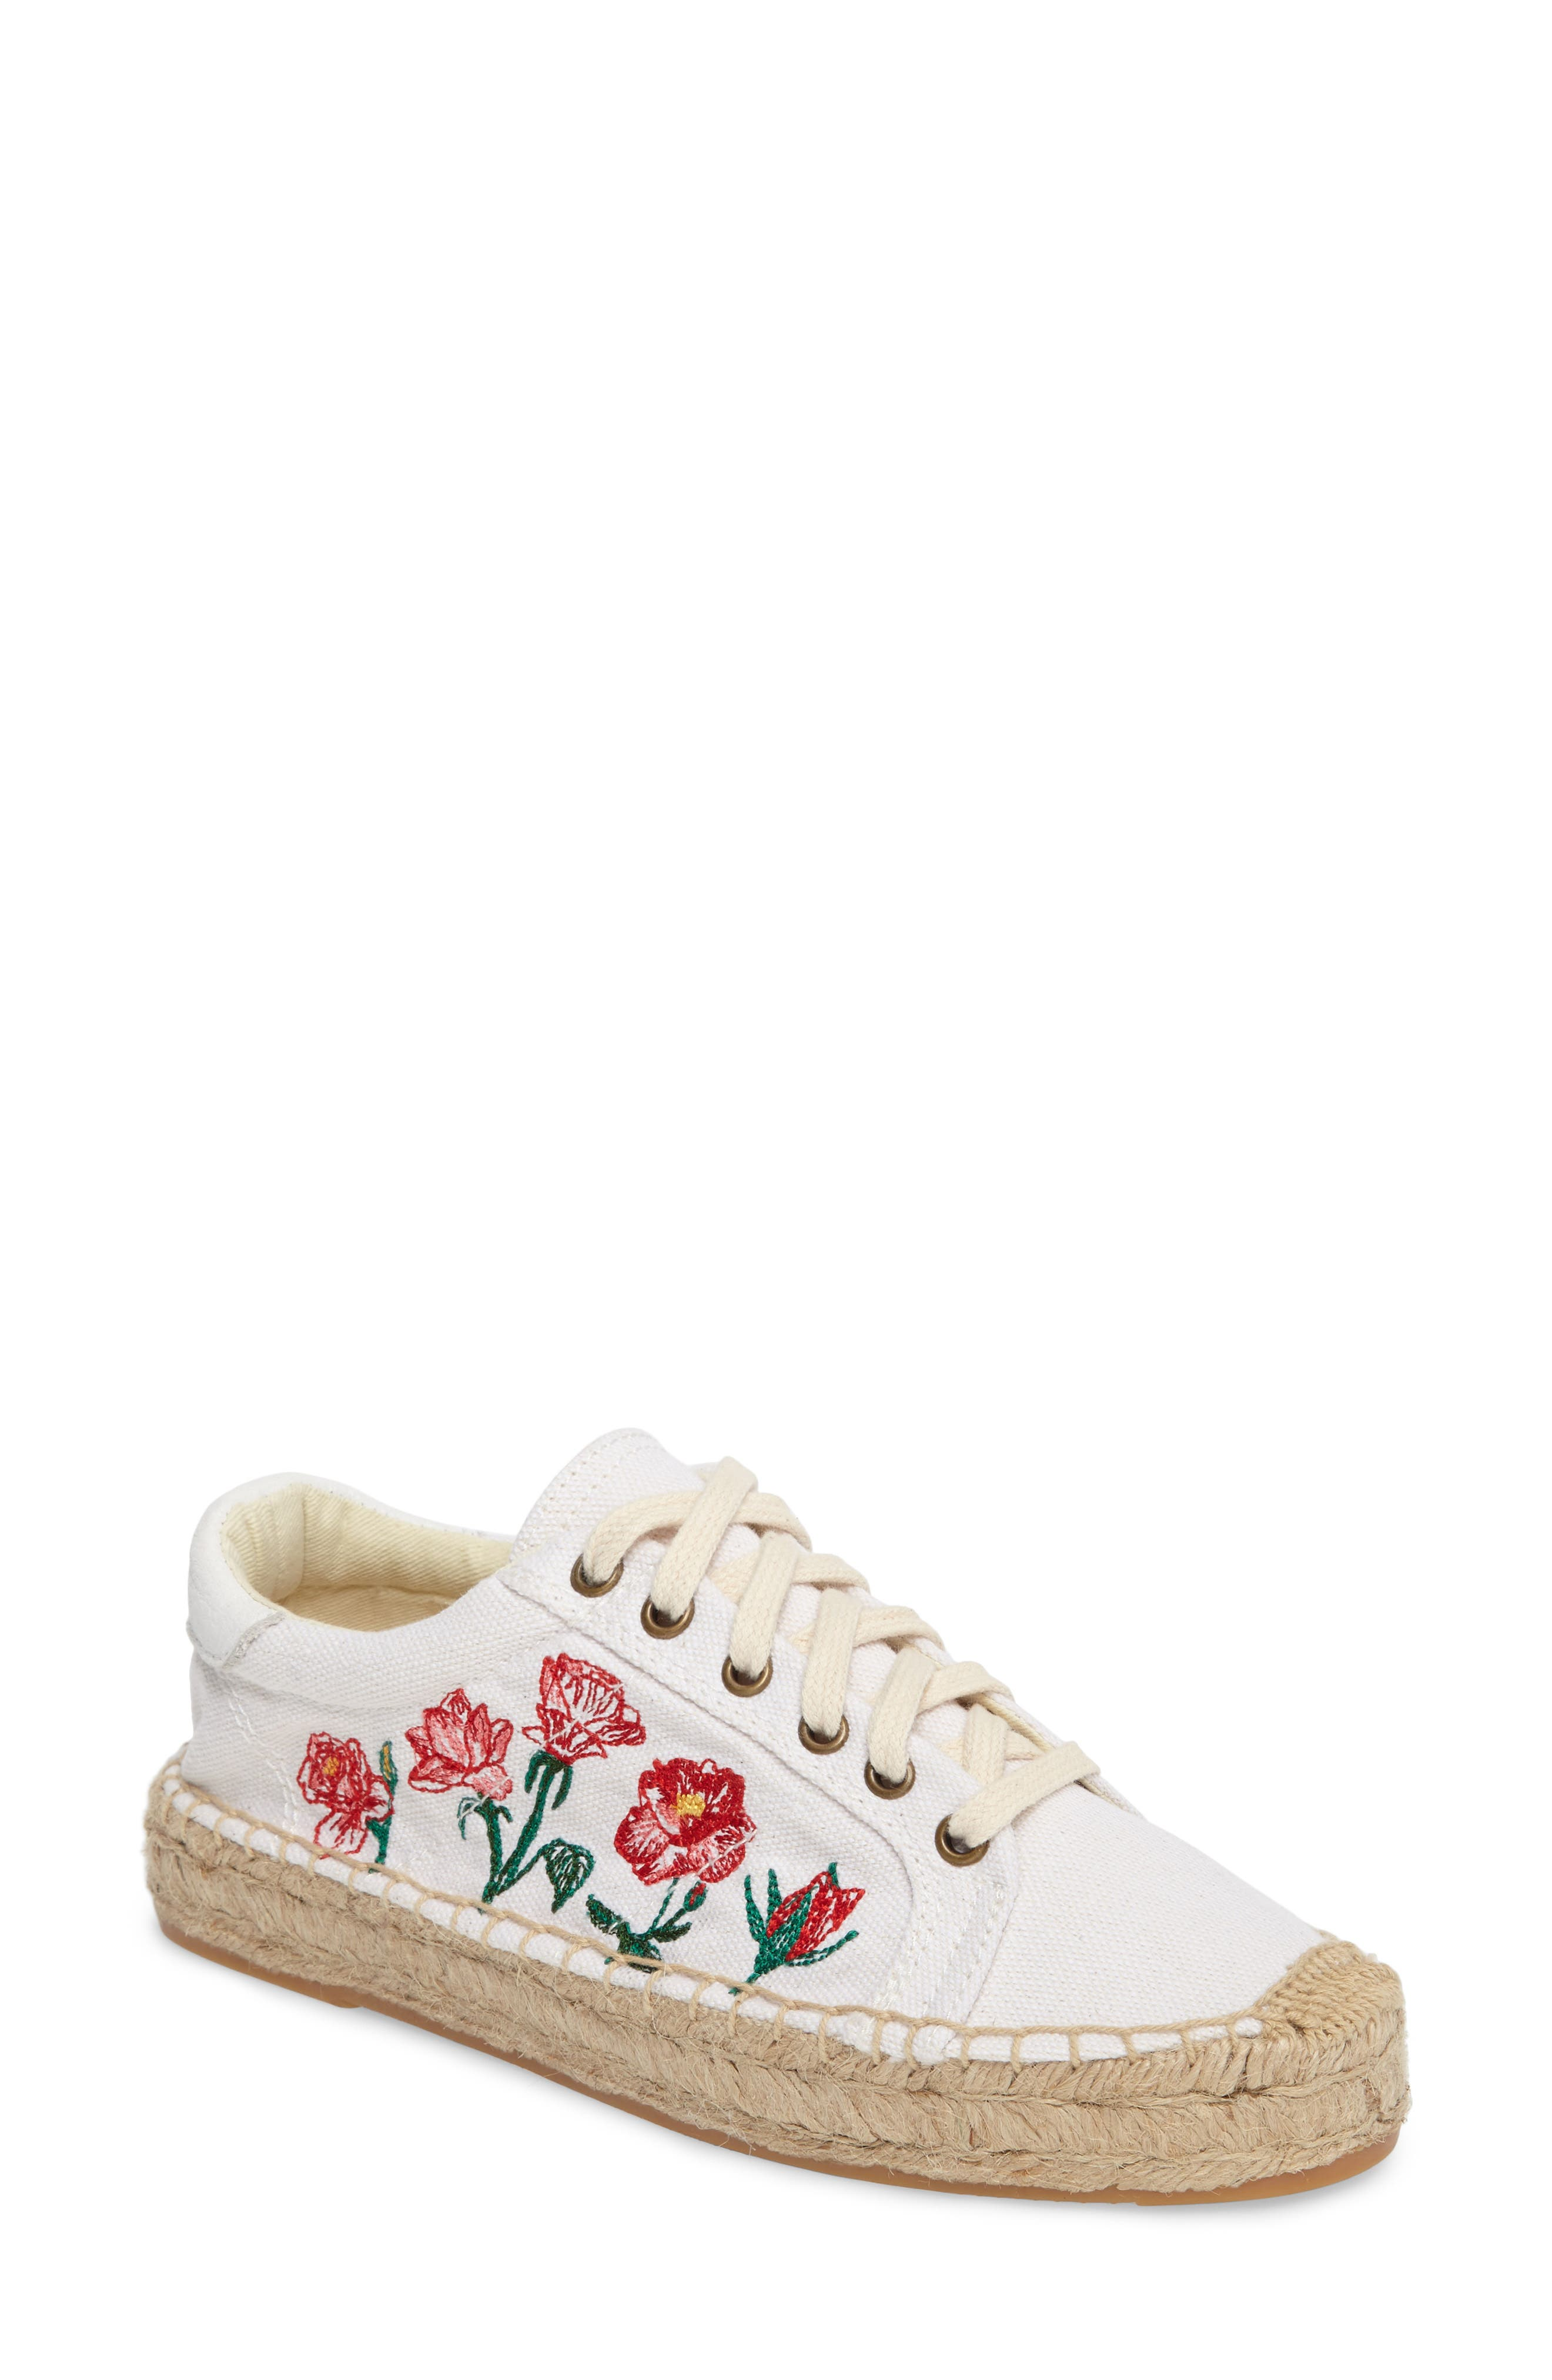 Floral Embroidered Espadrille Sneaker,                         Main,                         color, White Canvas